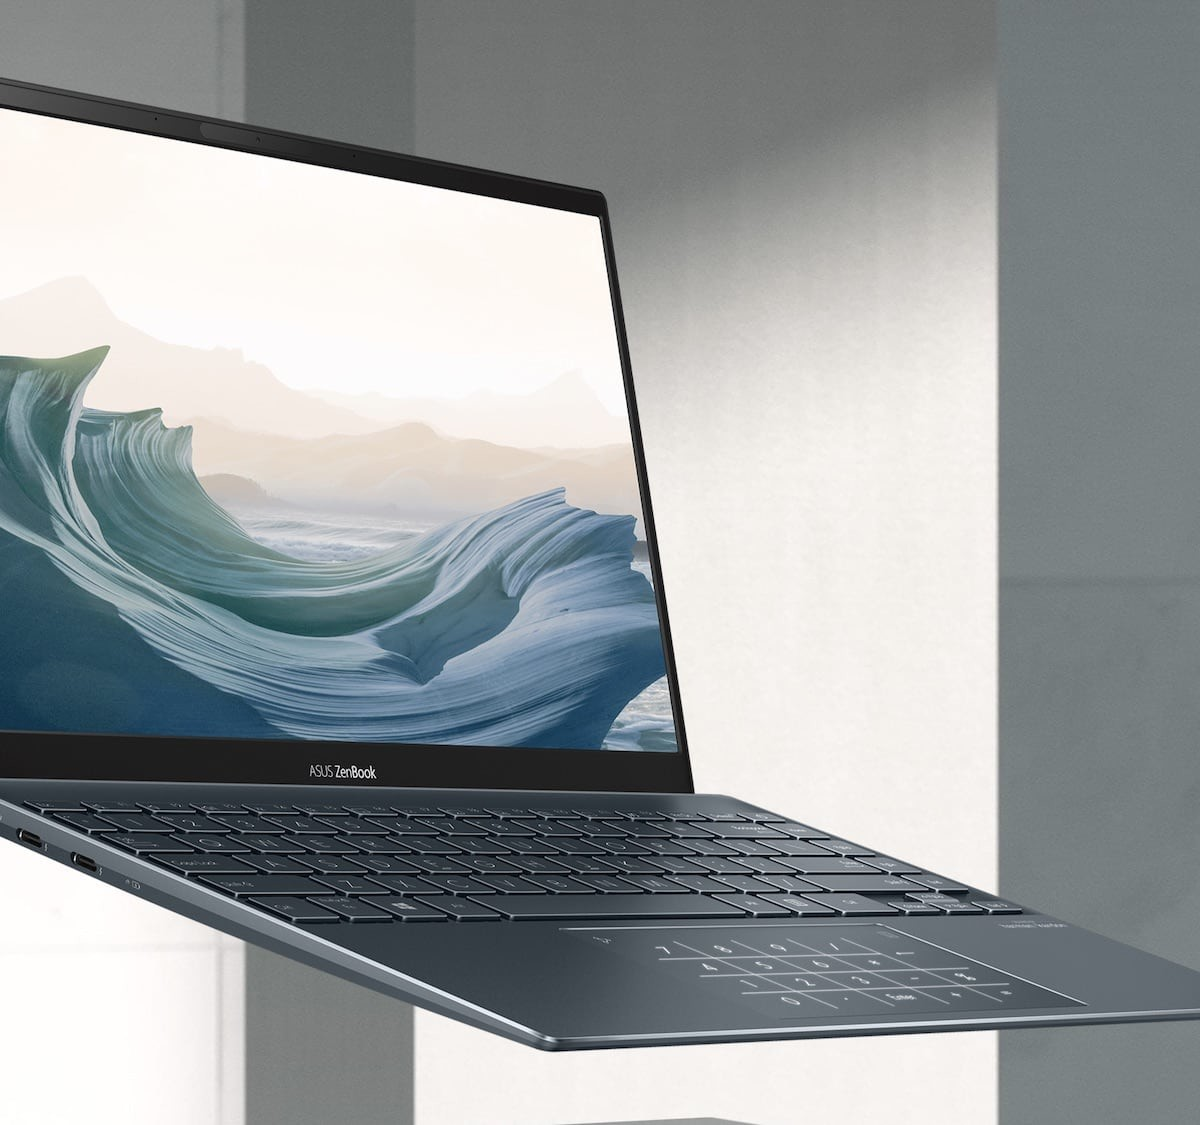 ASUS ZenBook Classic Line thin laptops are incredibly lightweight